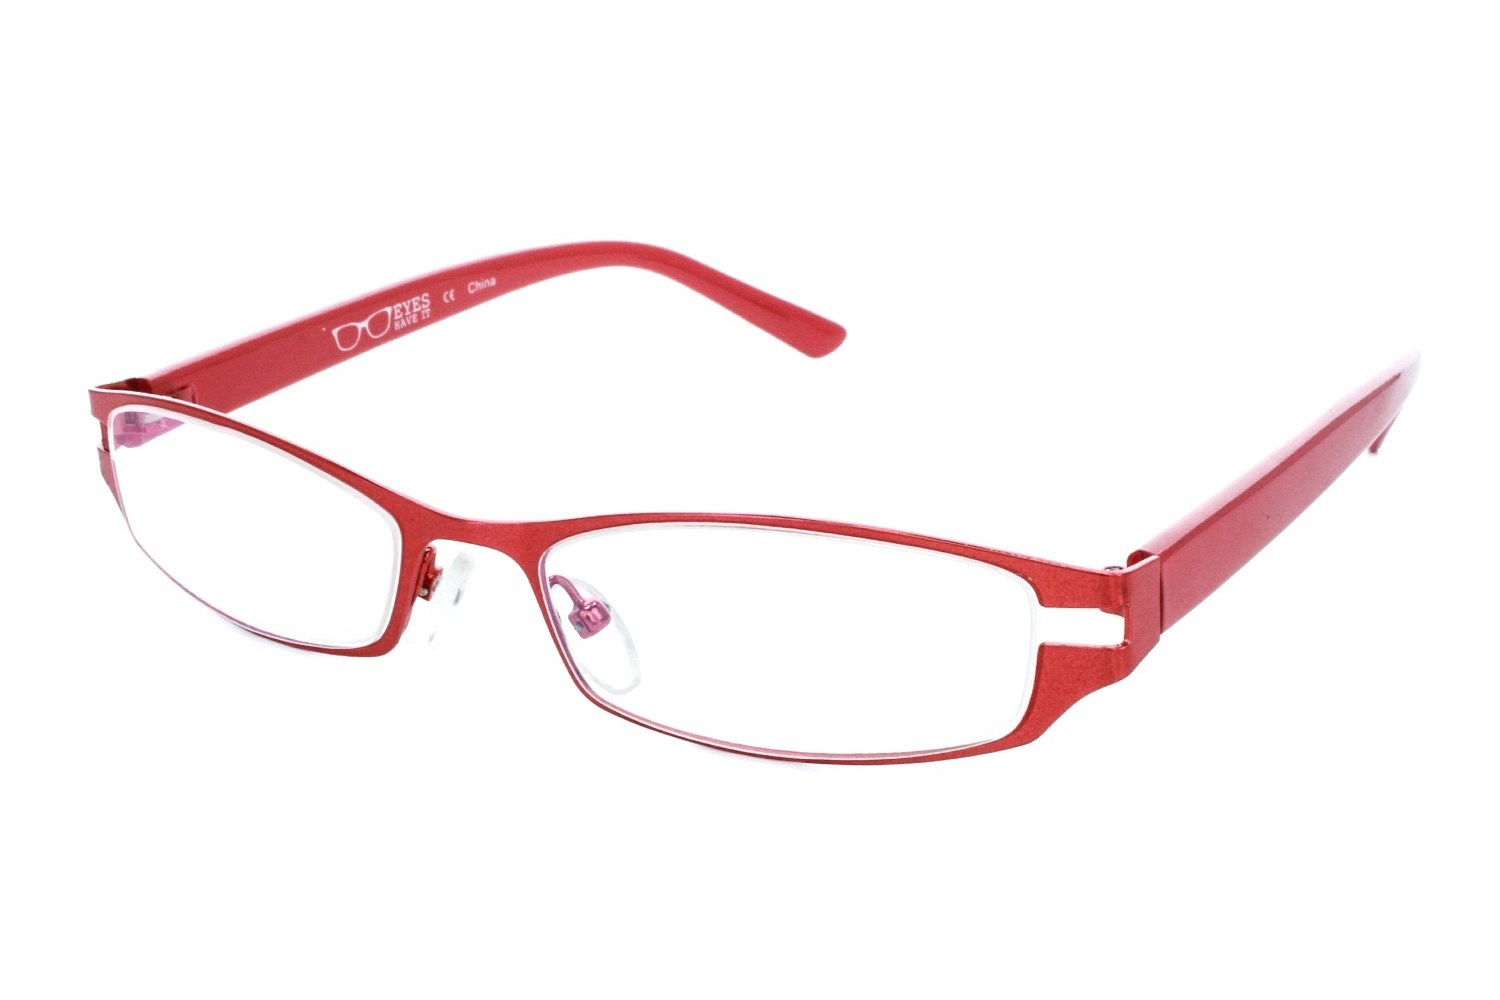 california accessories fictional reading glasses